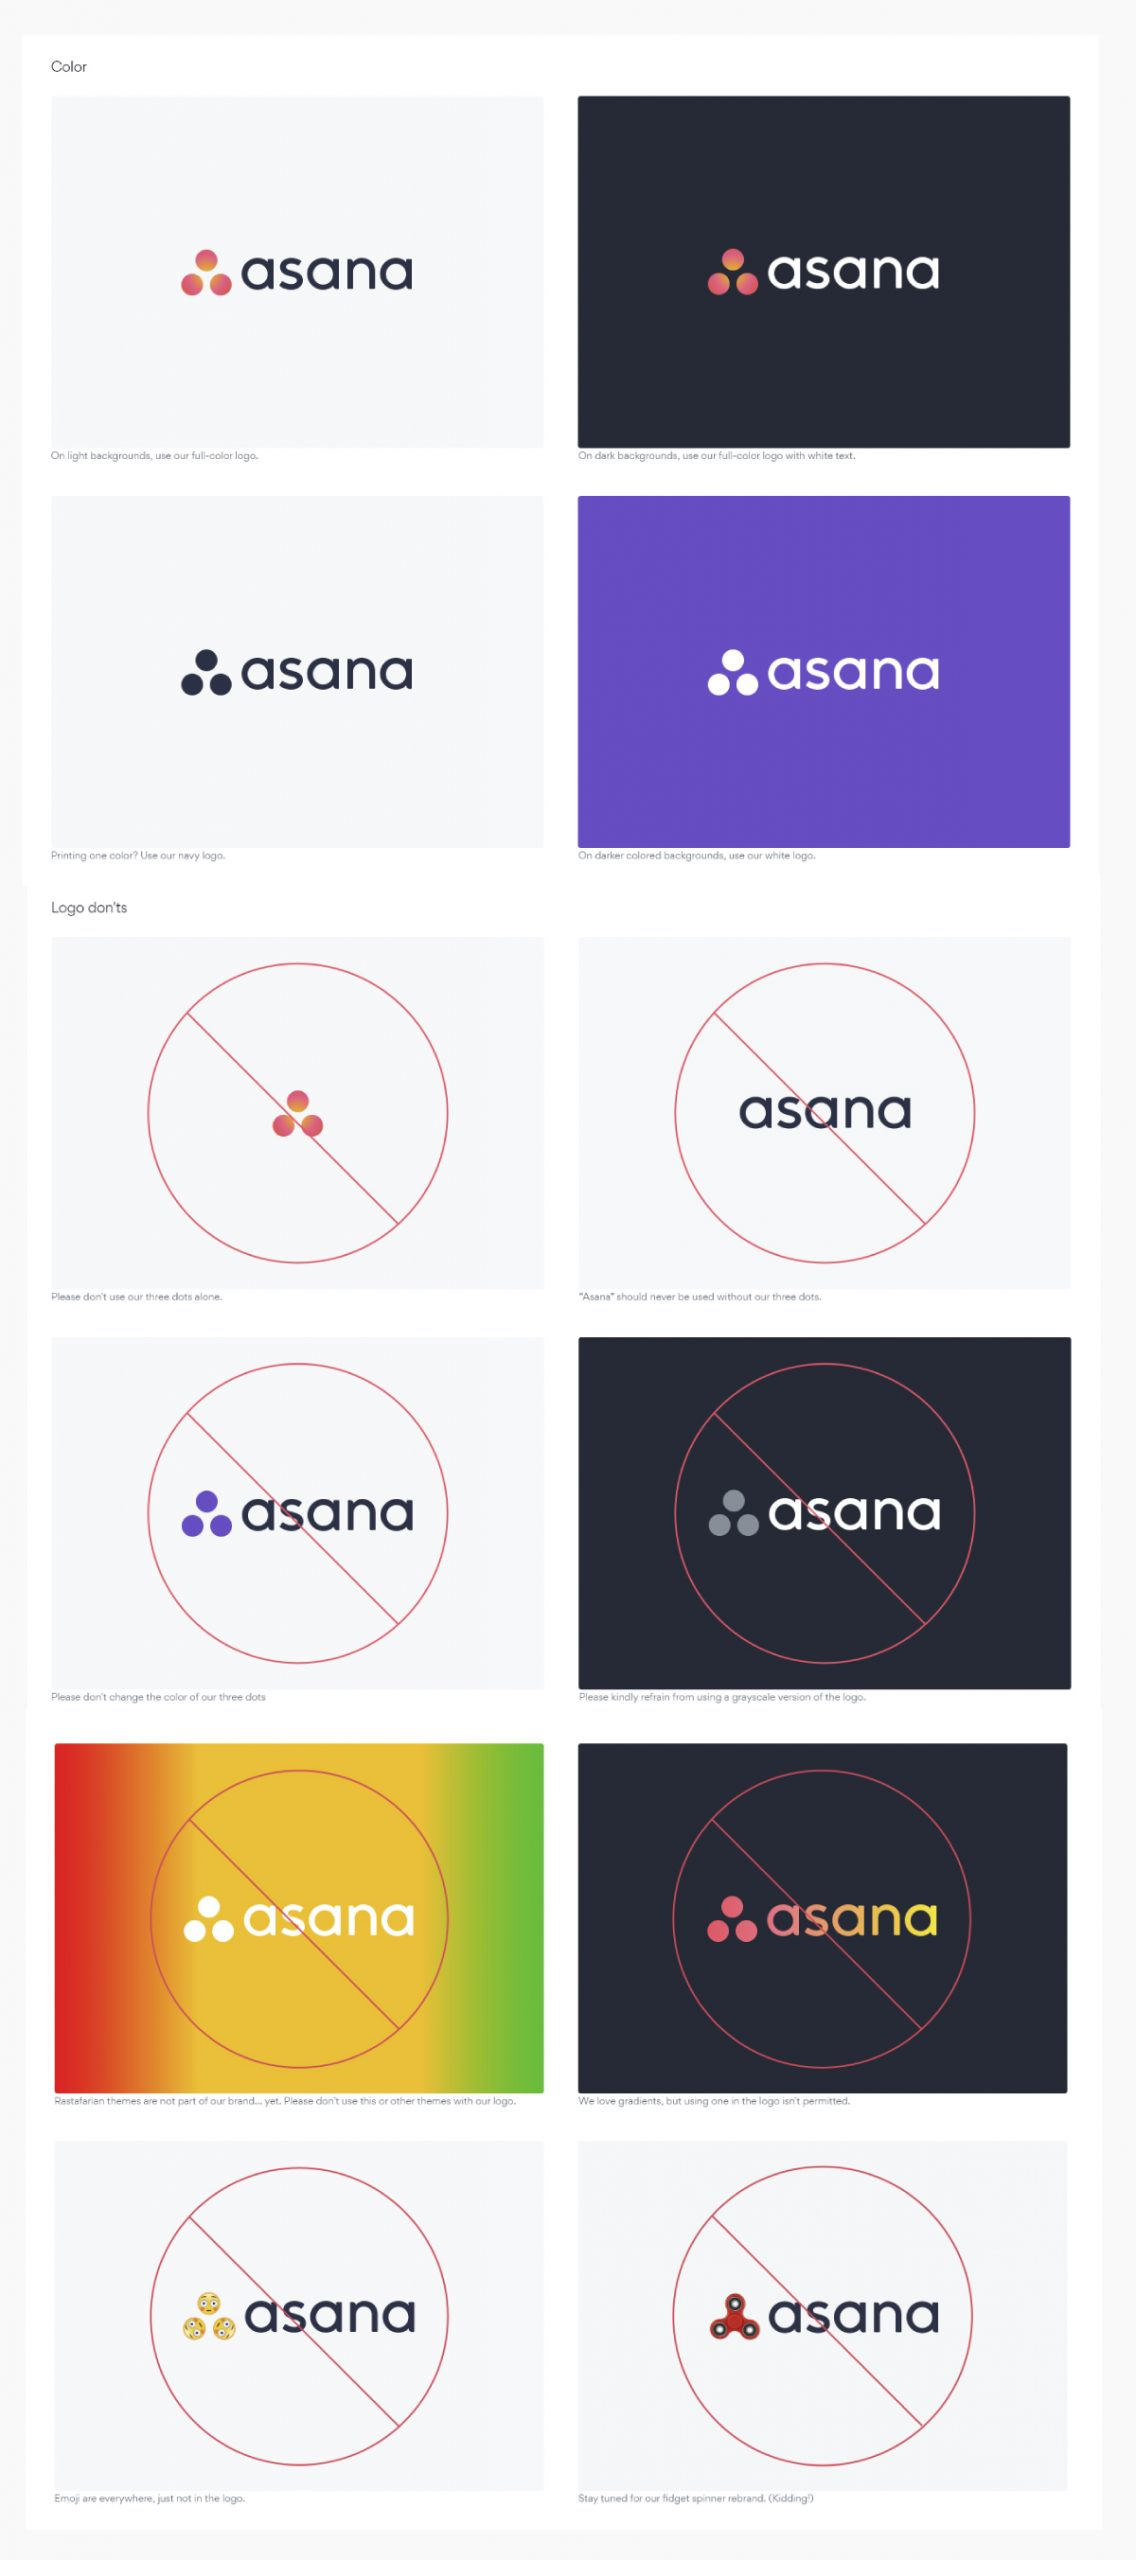 A screenshot of Asana's brand guidelines.